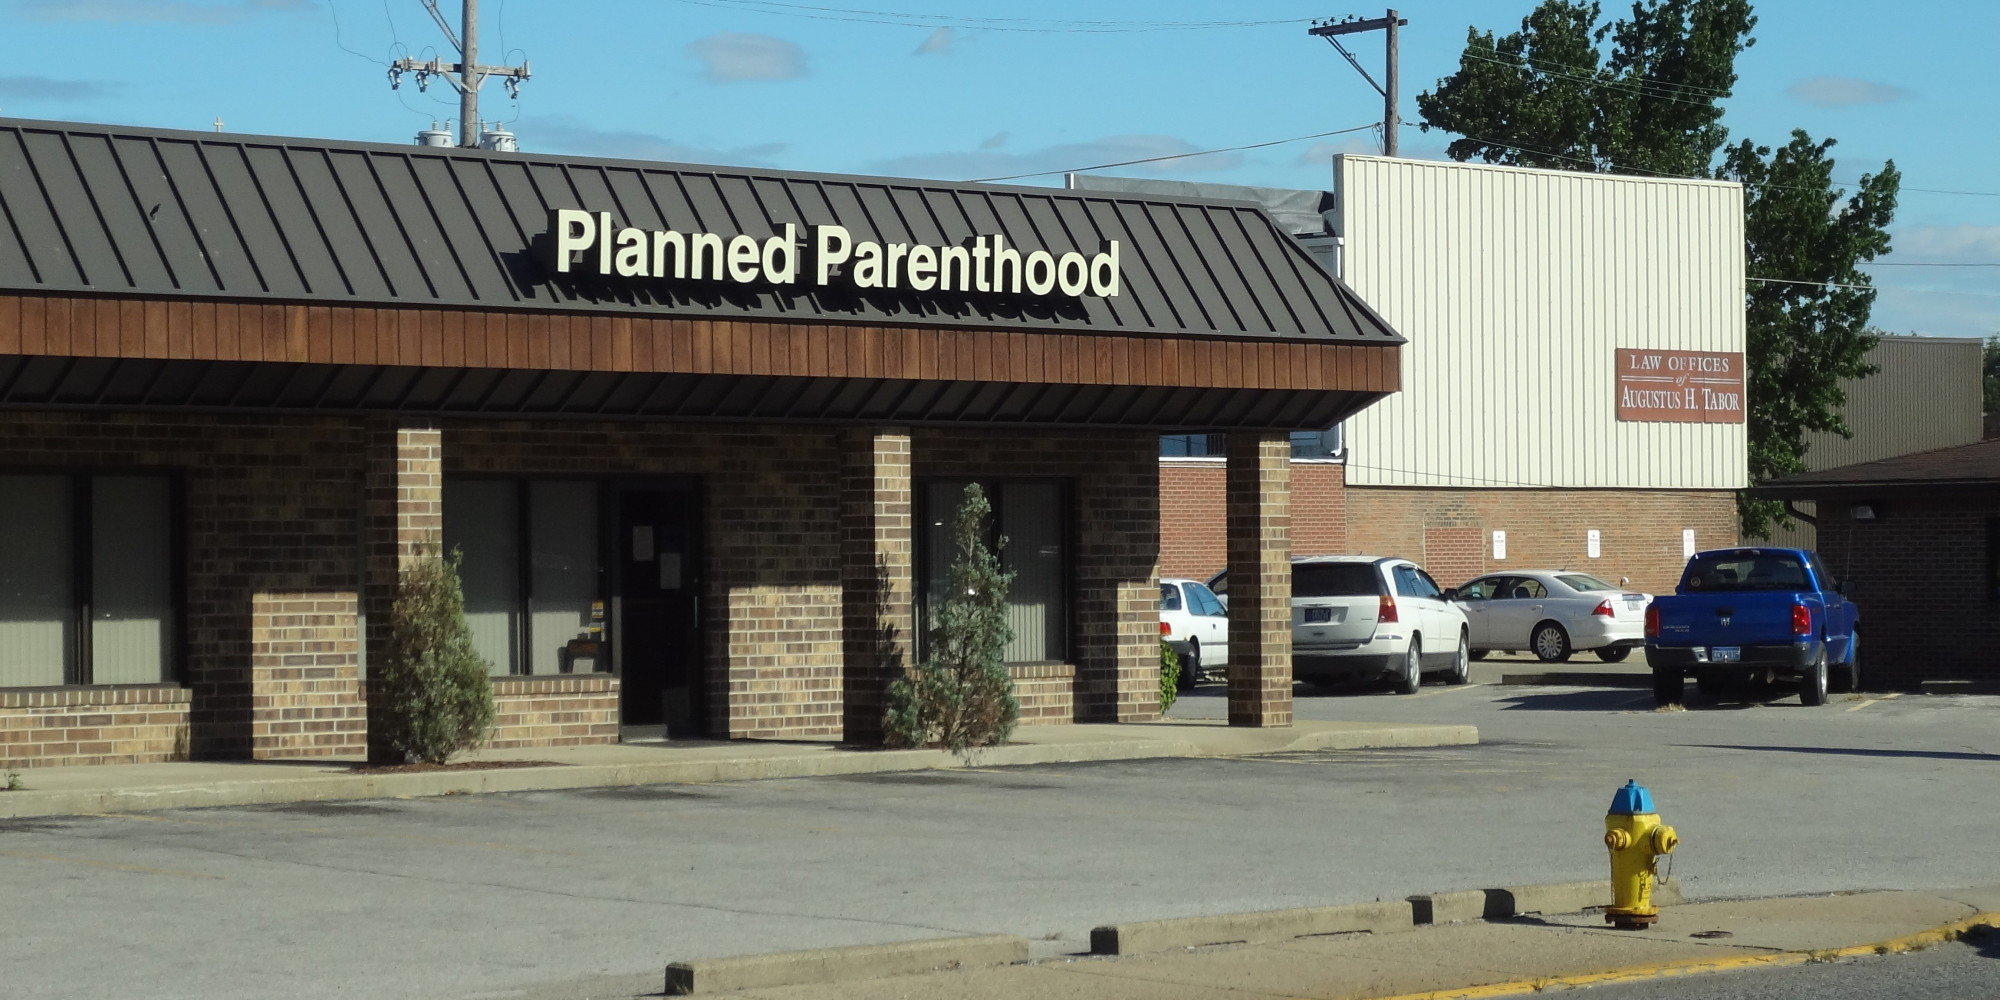 Indiana Shut Down Its Rural Planned Parenthood Clinics And Got An – Planned Parenthood Madison Wi Park St